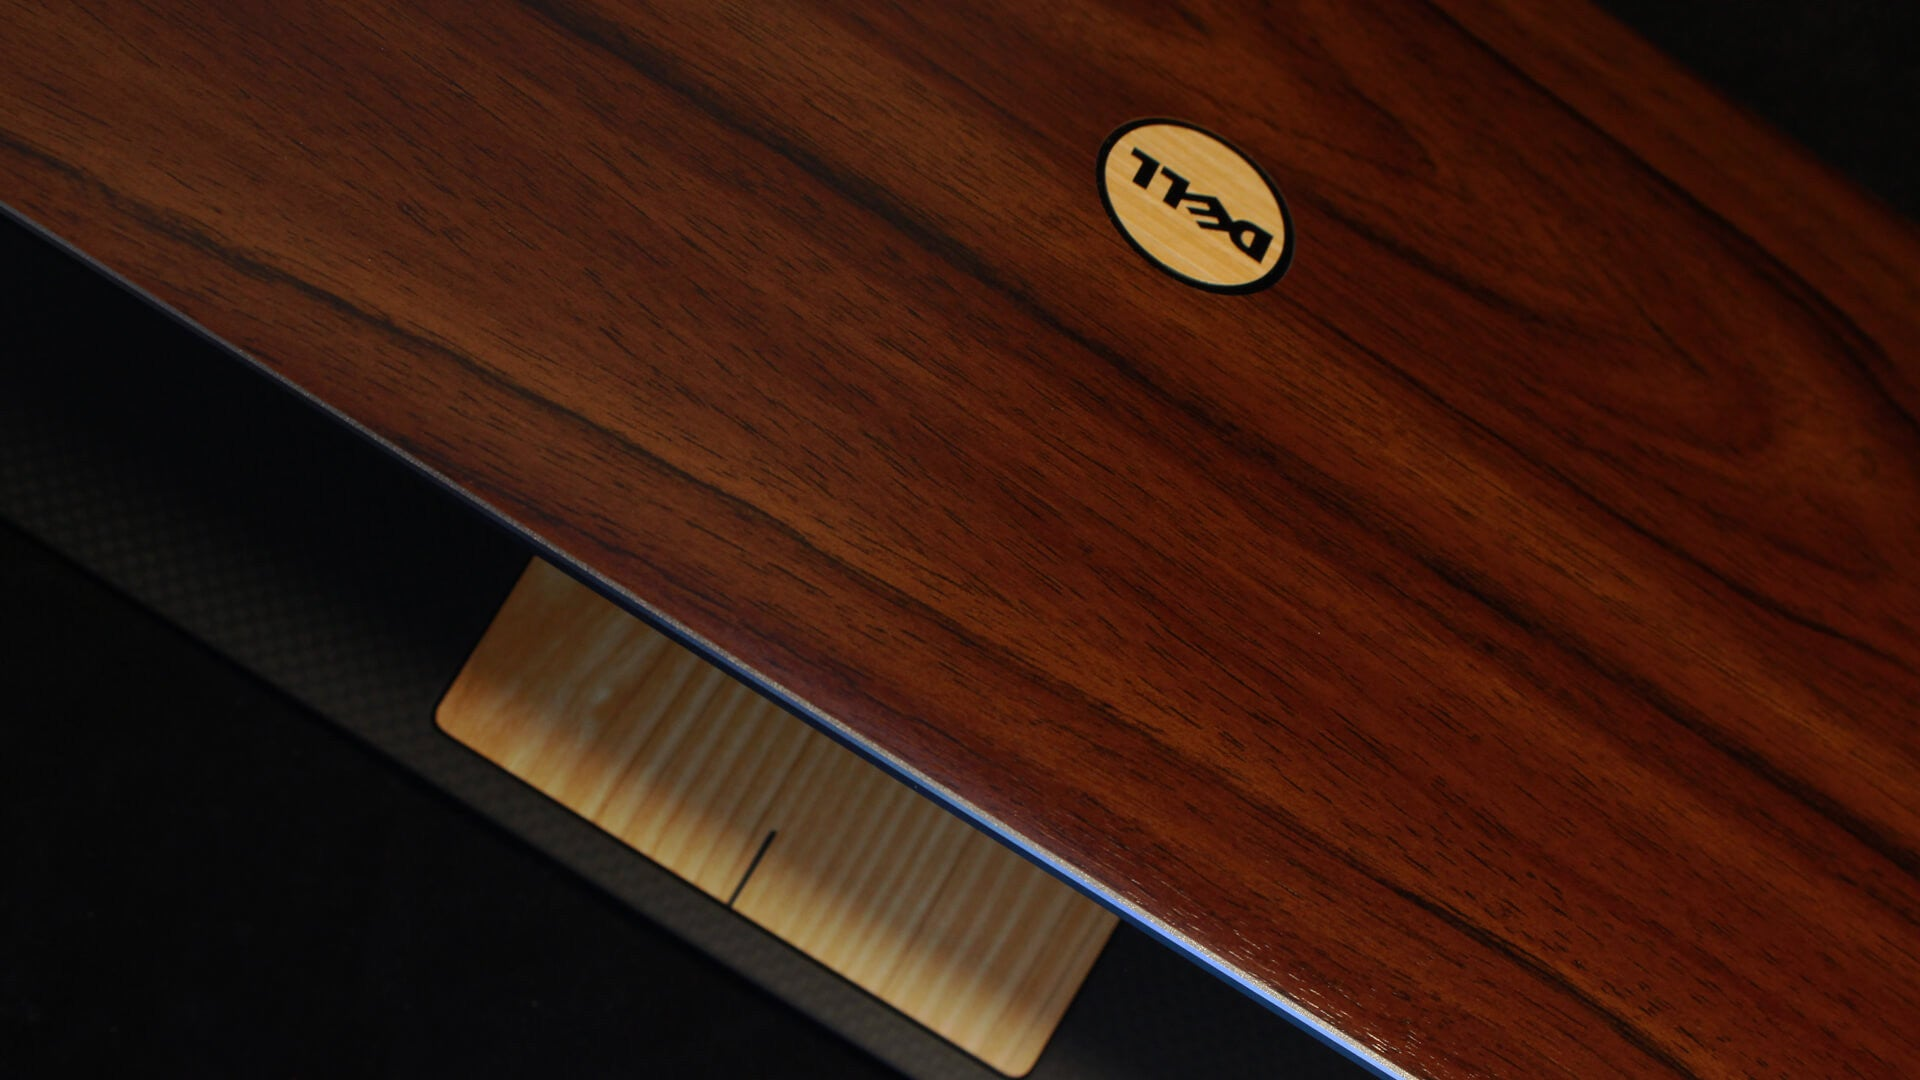 Dell XPS13 Walnut Wood Skins